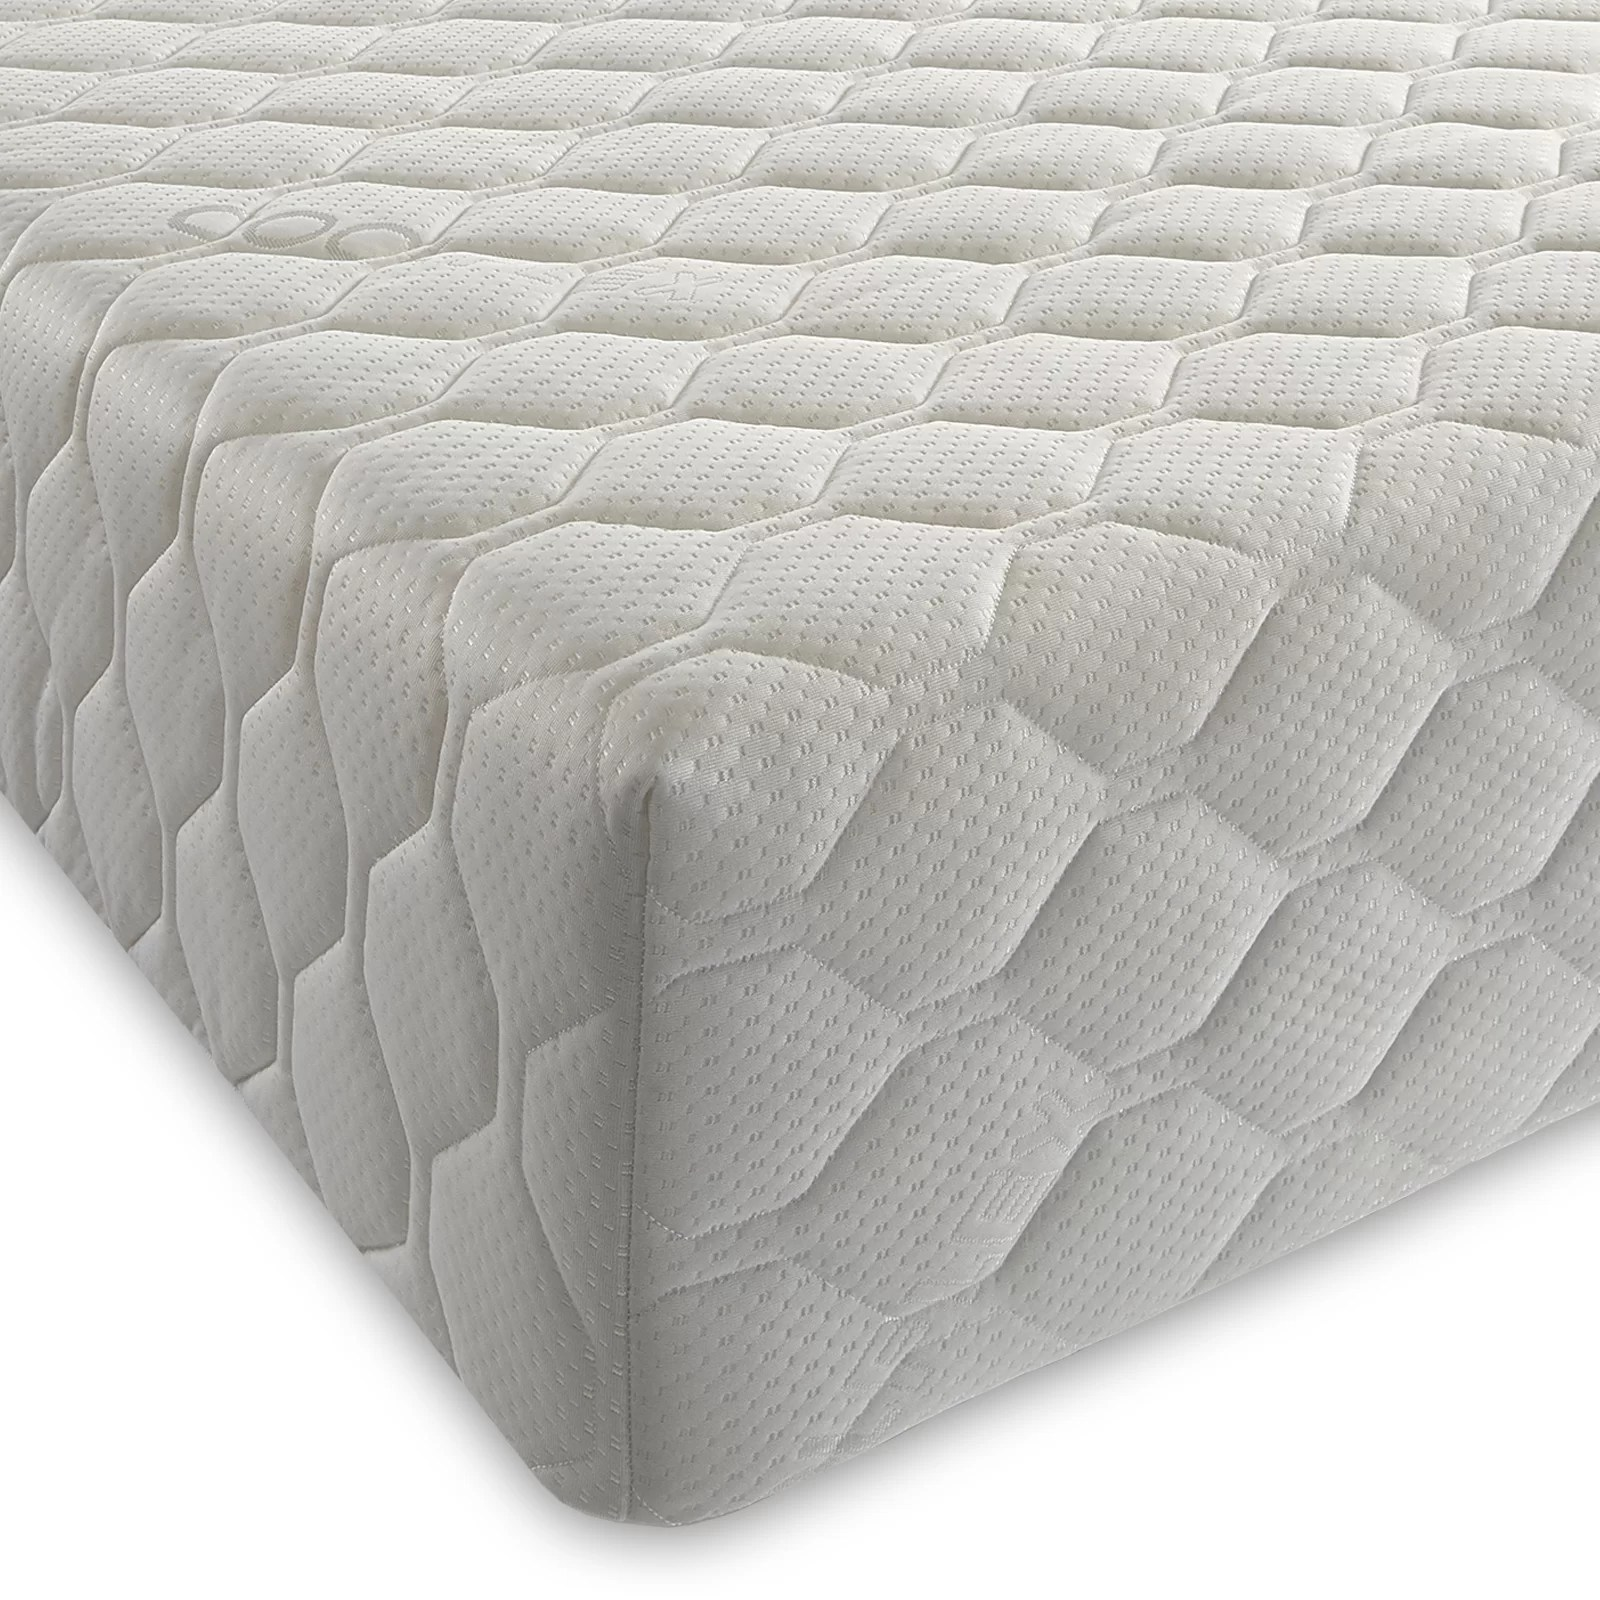 Latex Foam Mattress Latex Foam Mattress